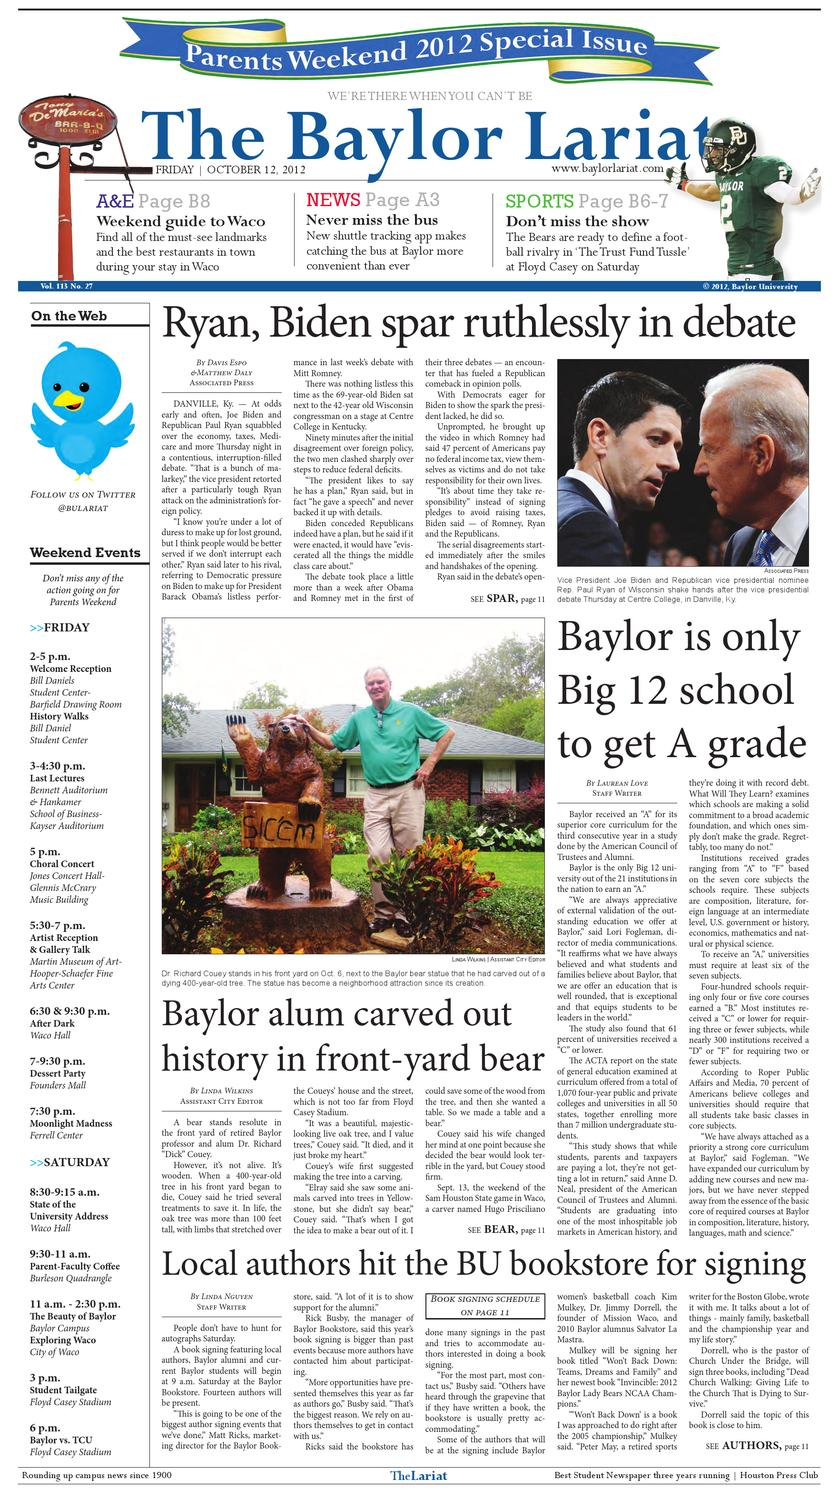 The Baylor Lariat: Parents Weekend Issue 2012 by The Baylor